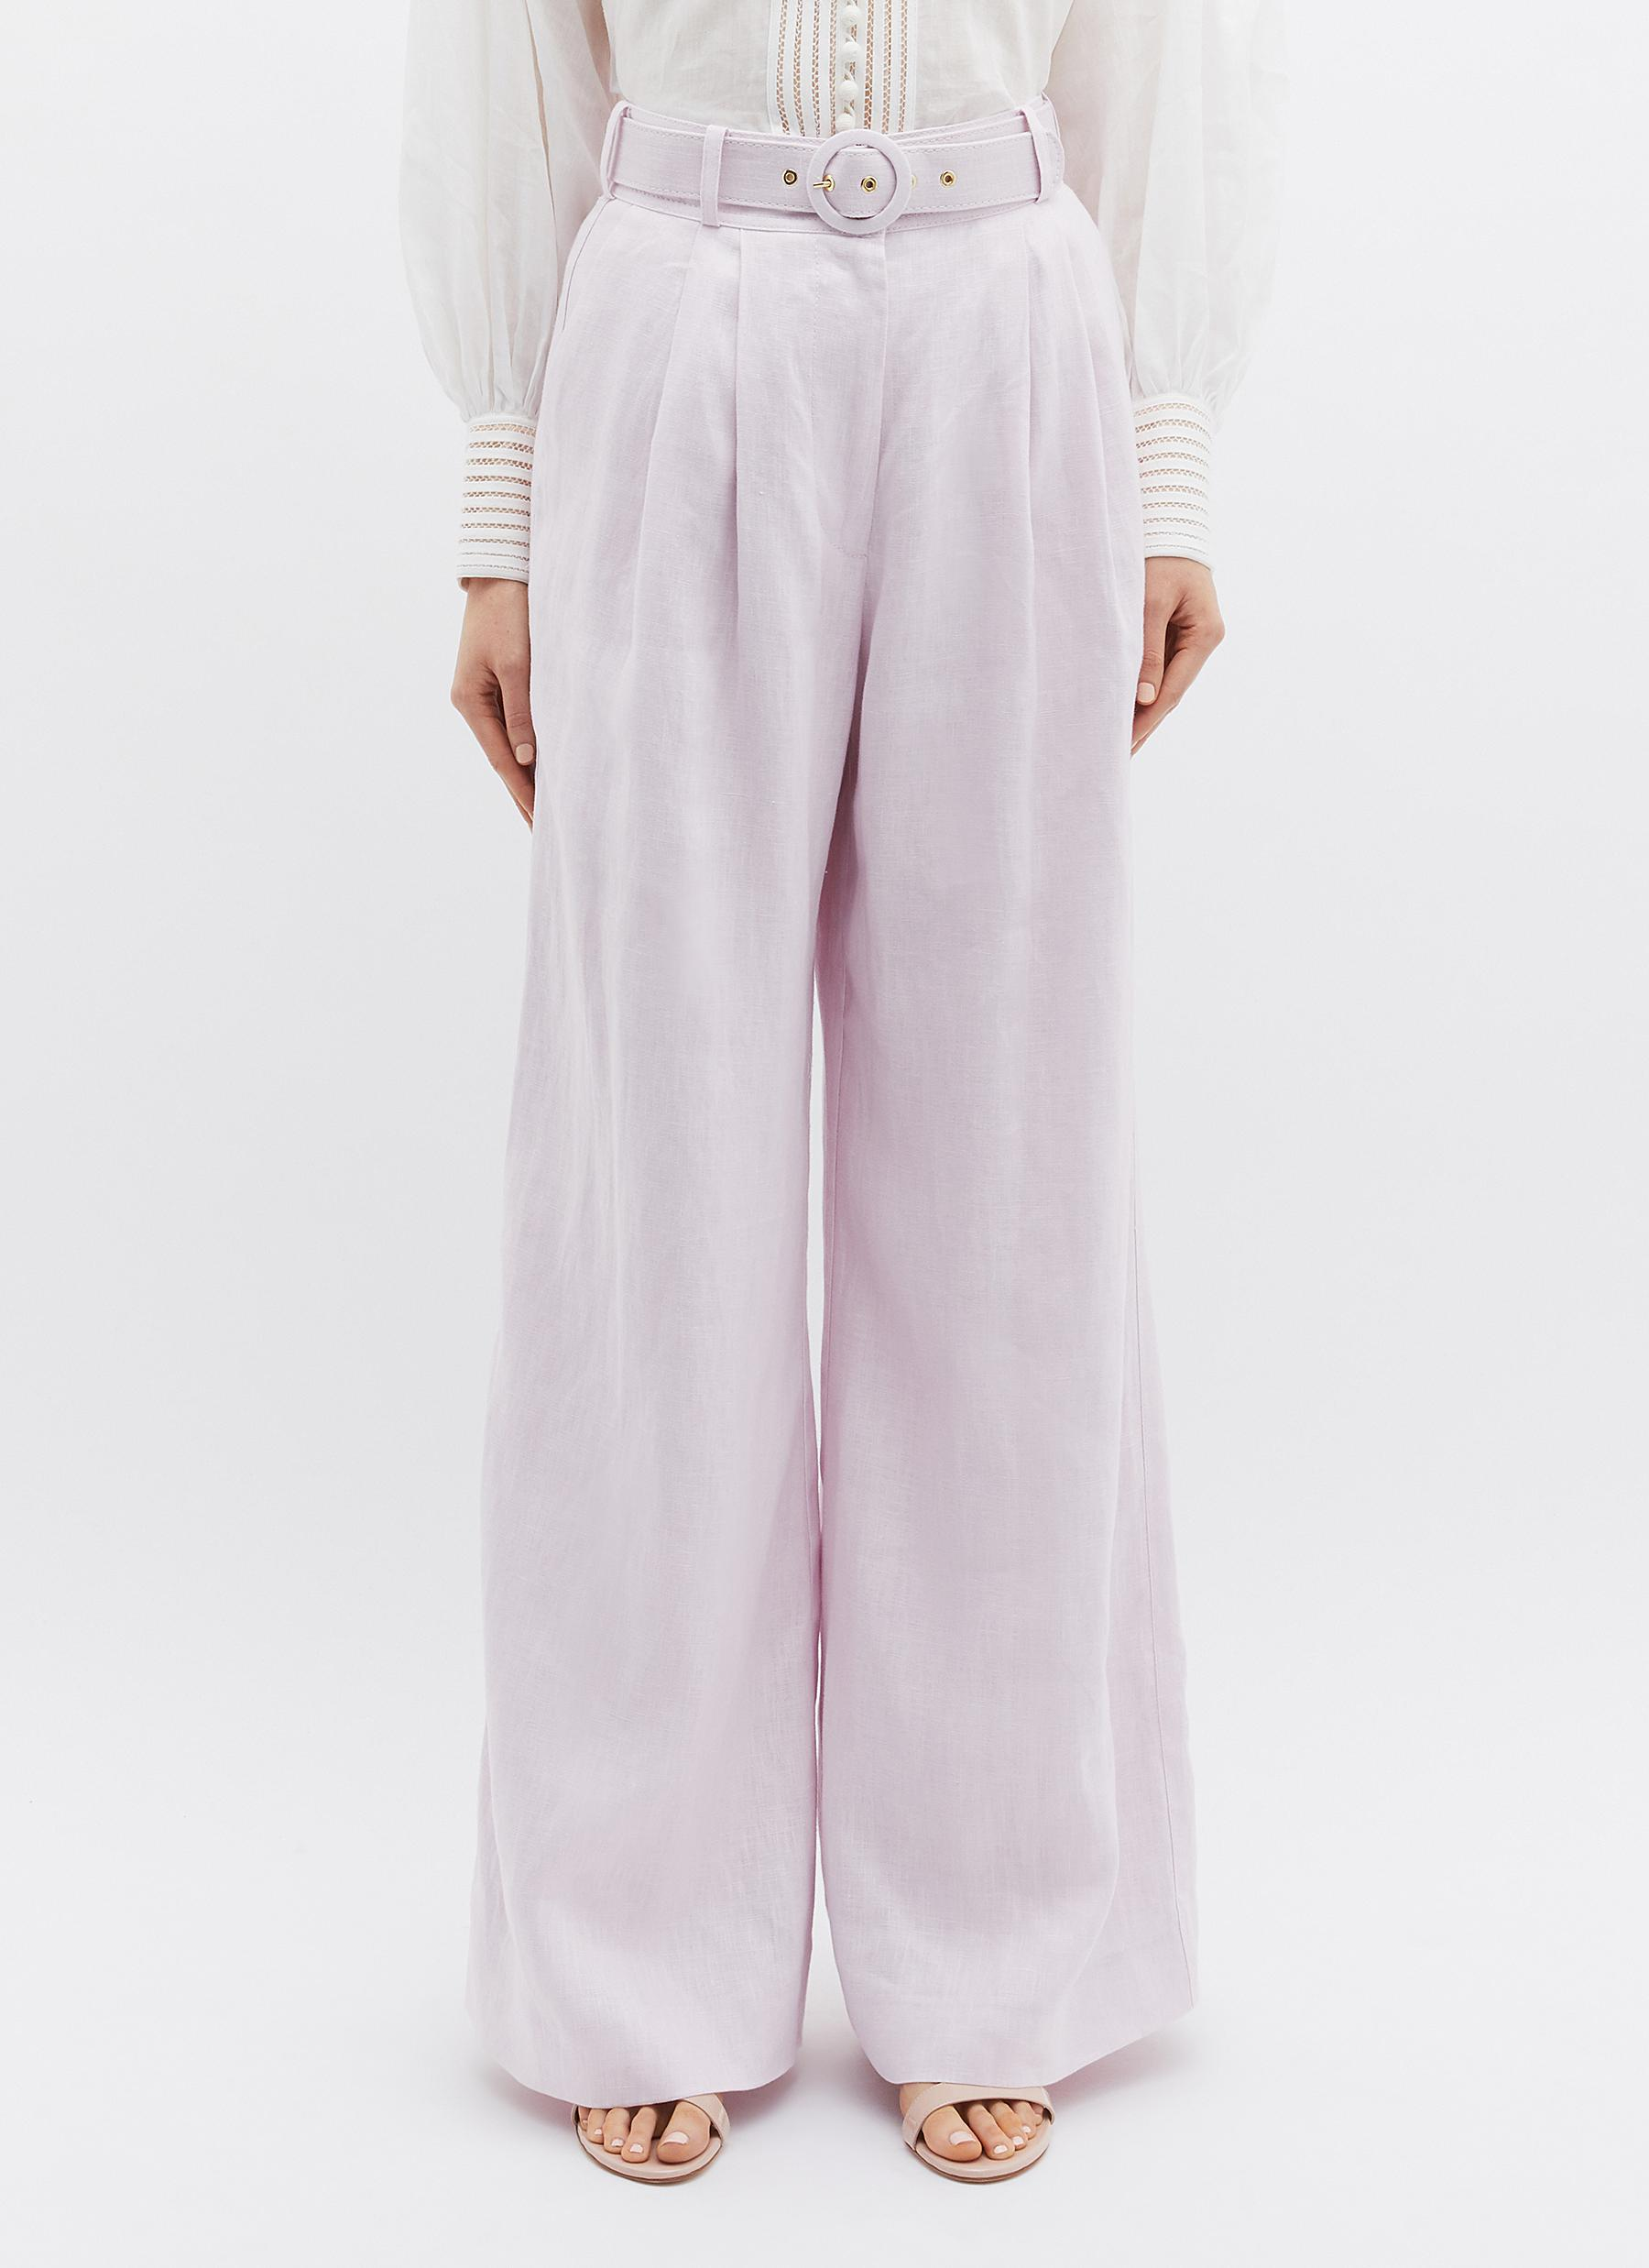 Zimmermann 'corsage Tailored' Belted Linen Wide Leg Pants in ...